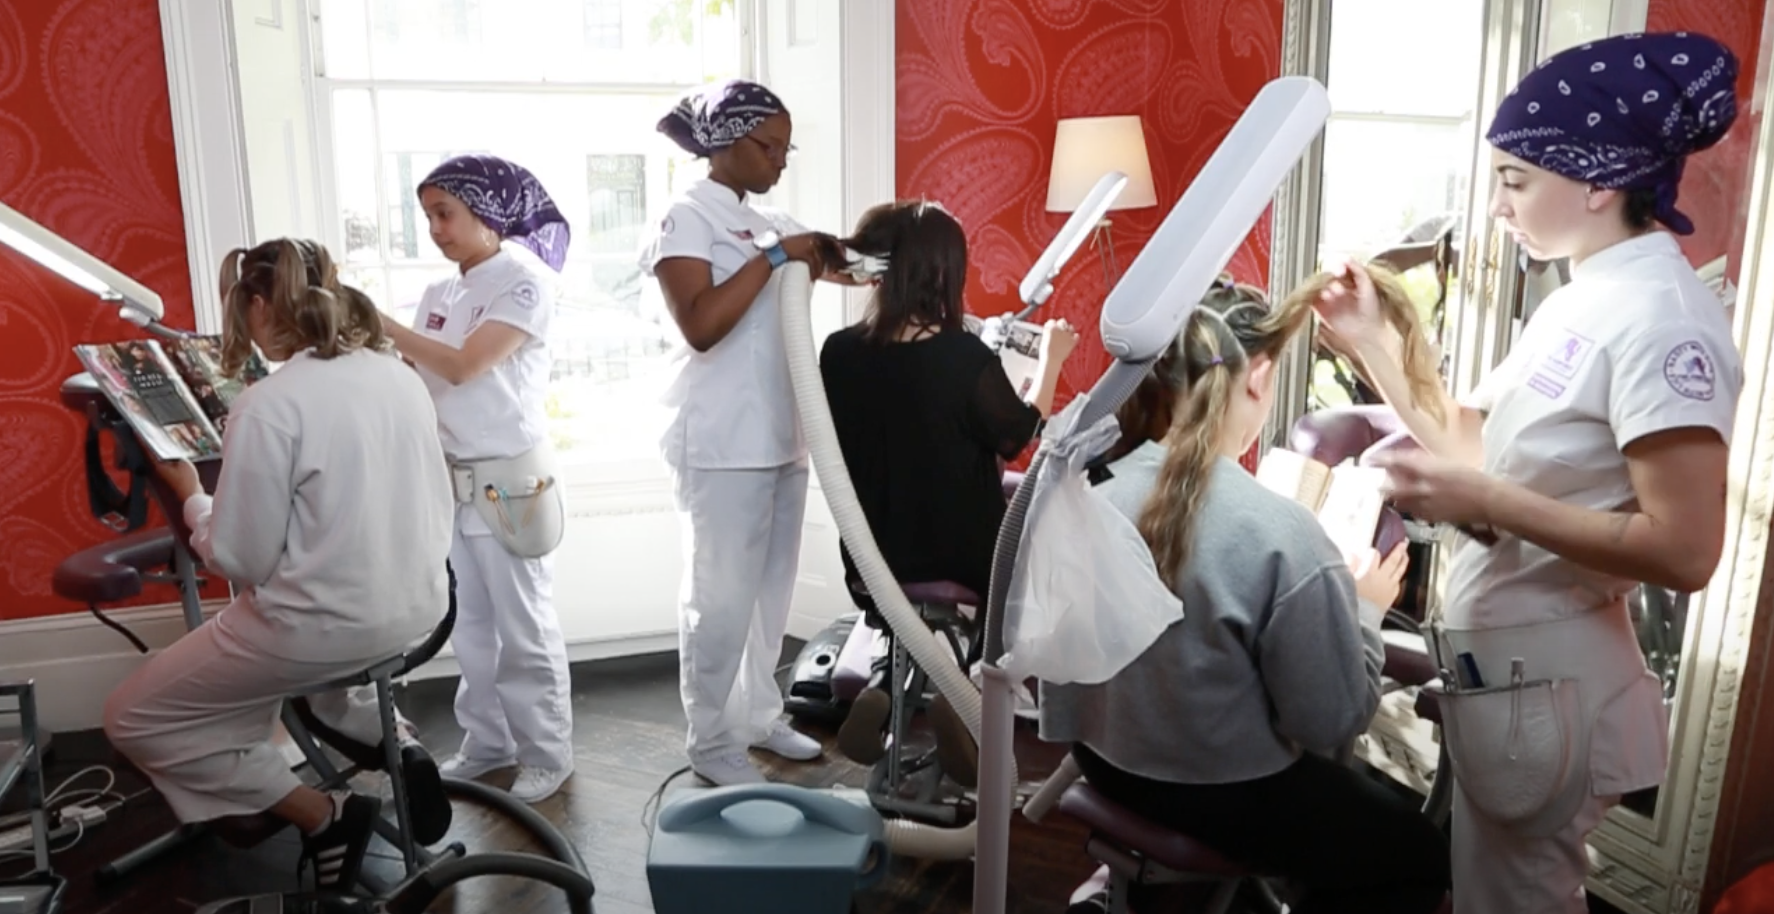 The Hairforce at work in a head lice removal clinic